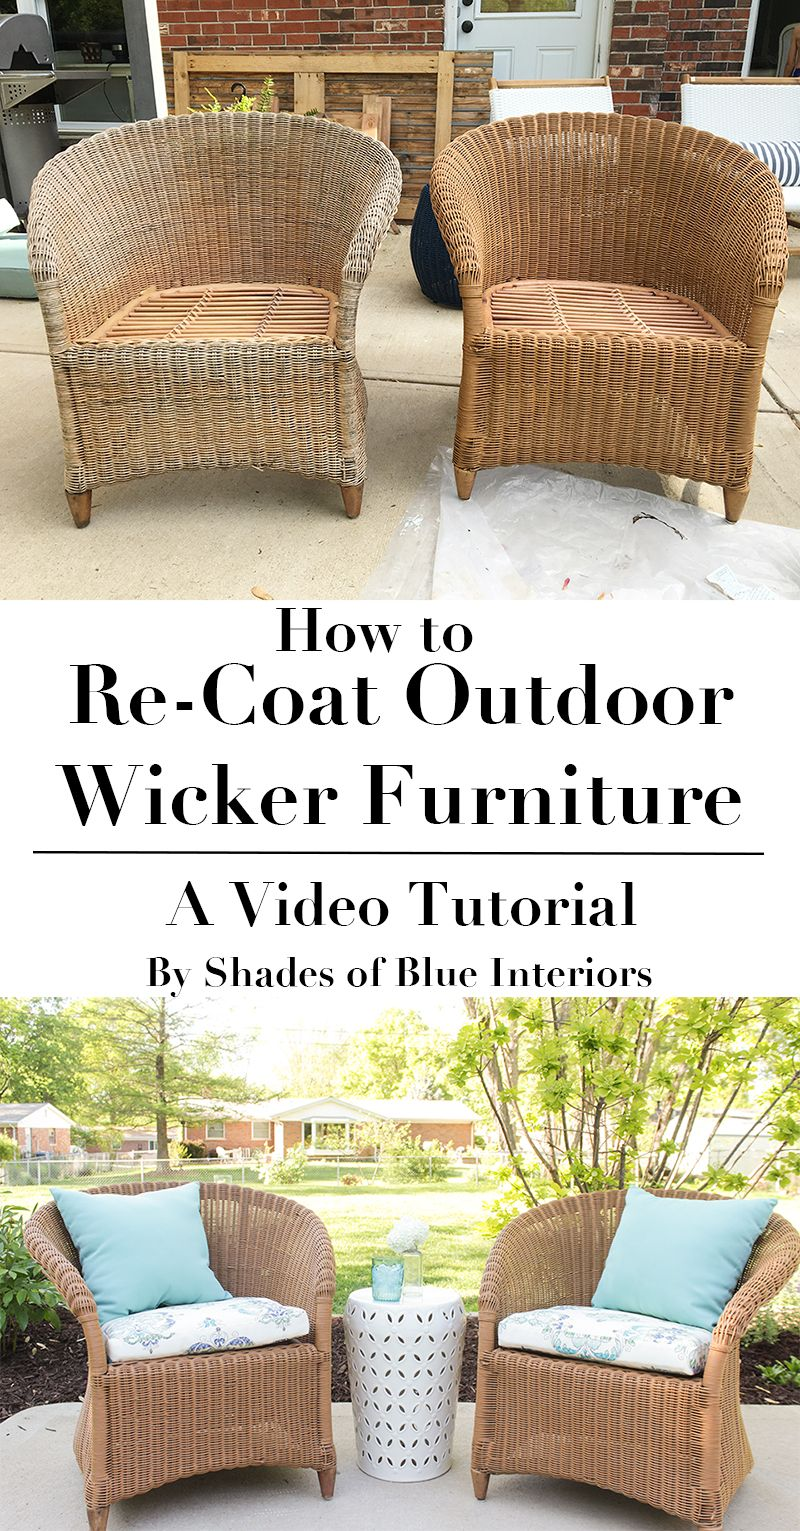 How To Refresh Aged Or Worn Wicker Furniture By Recoating With A Solid Exterior Stain Video